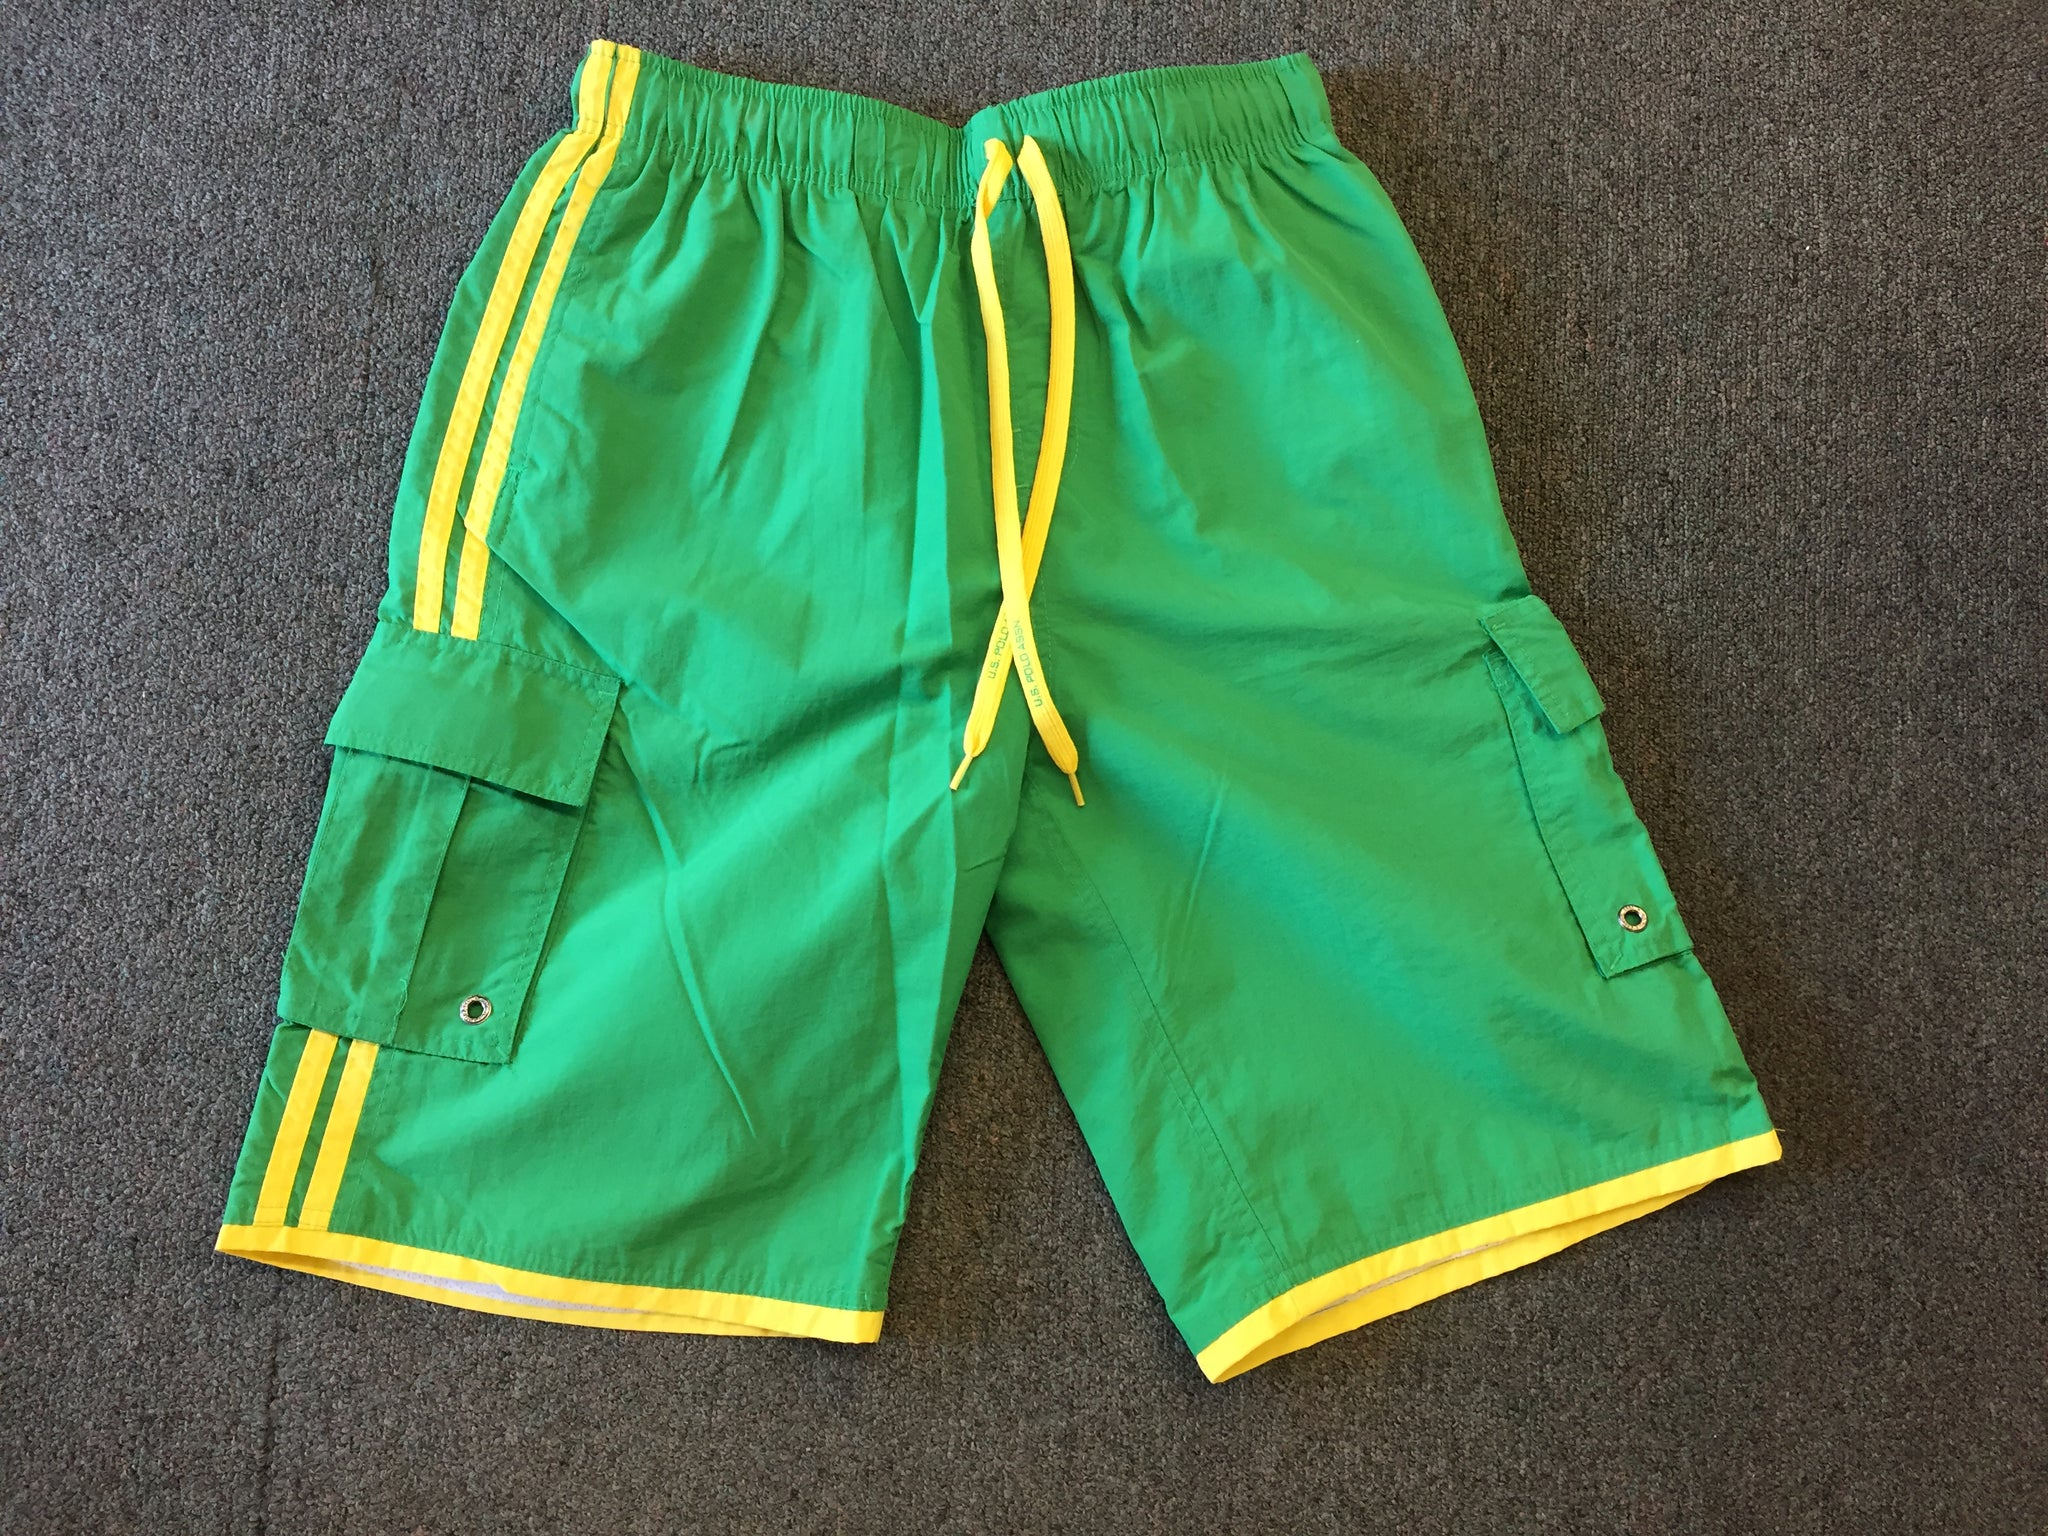 Vintage 1990's U.S. Polo Assn Bright Green Swim Trunks Retro